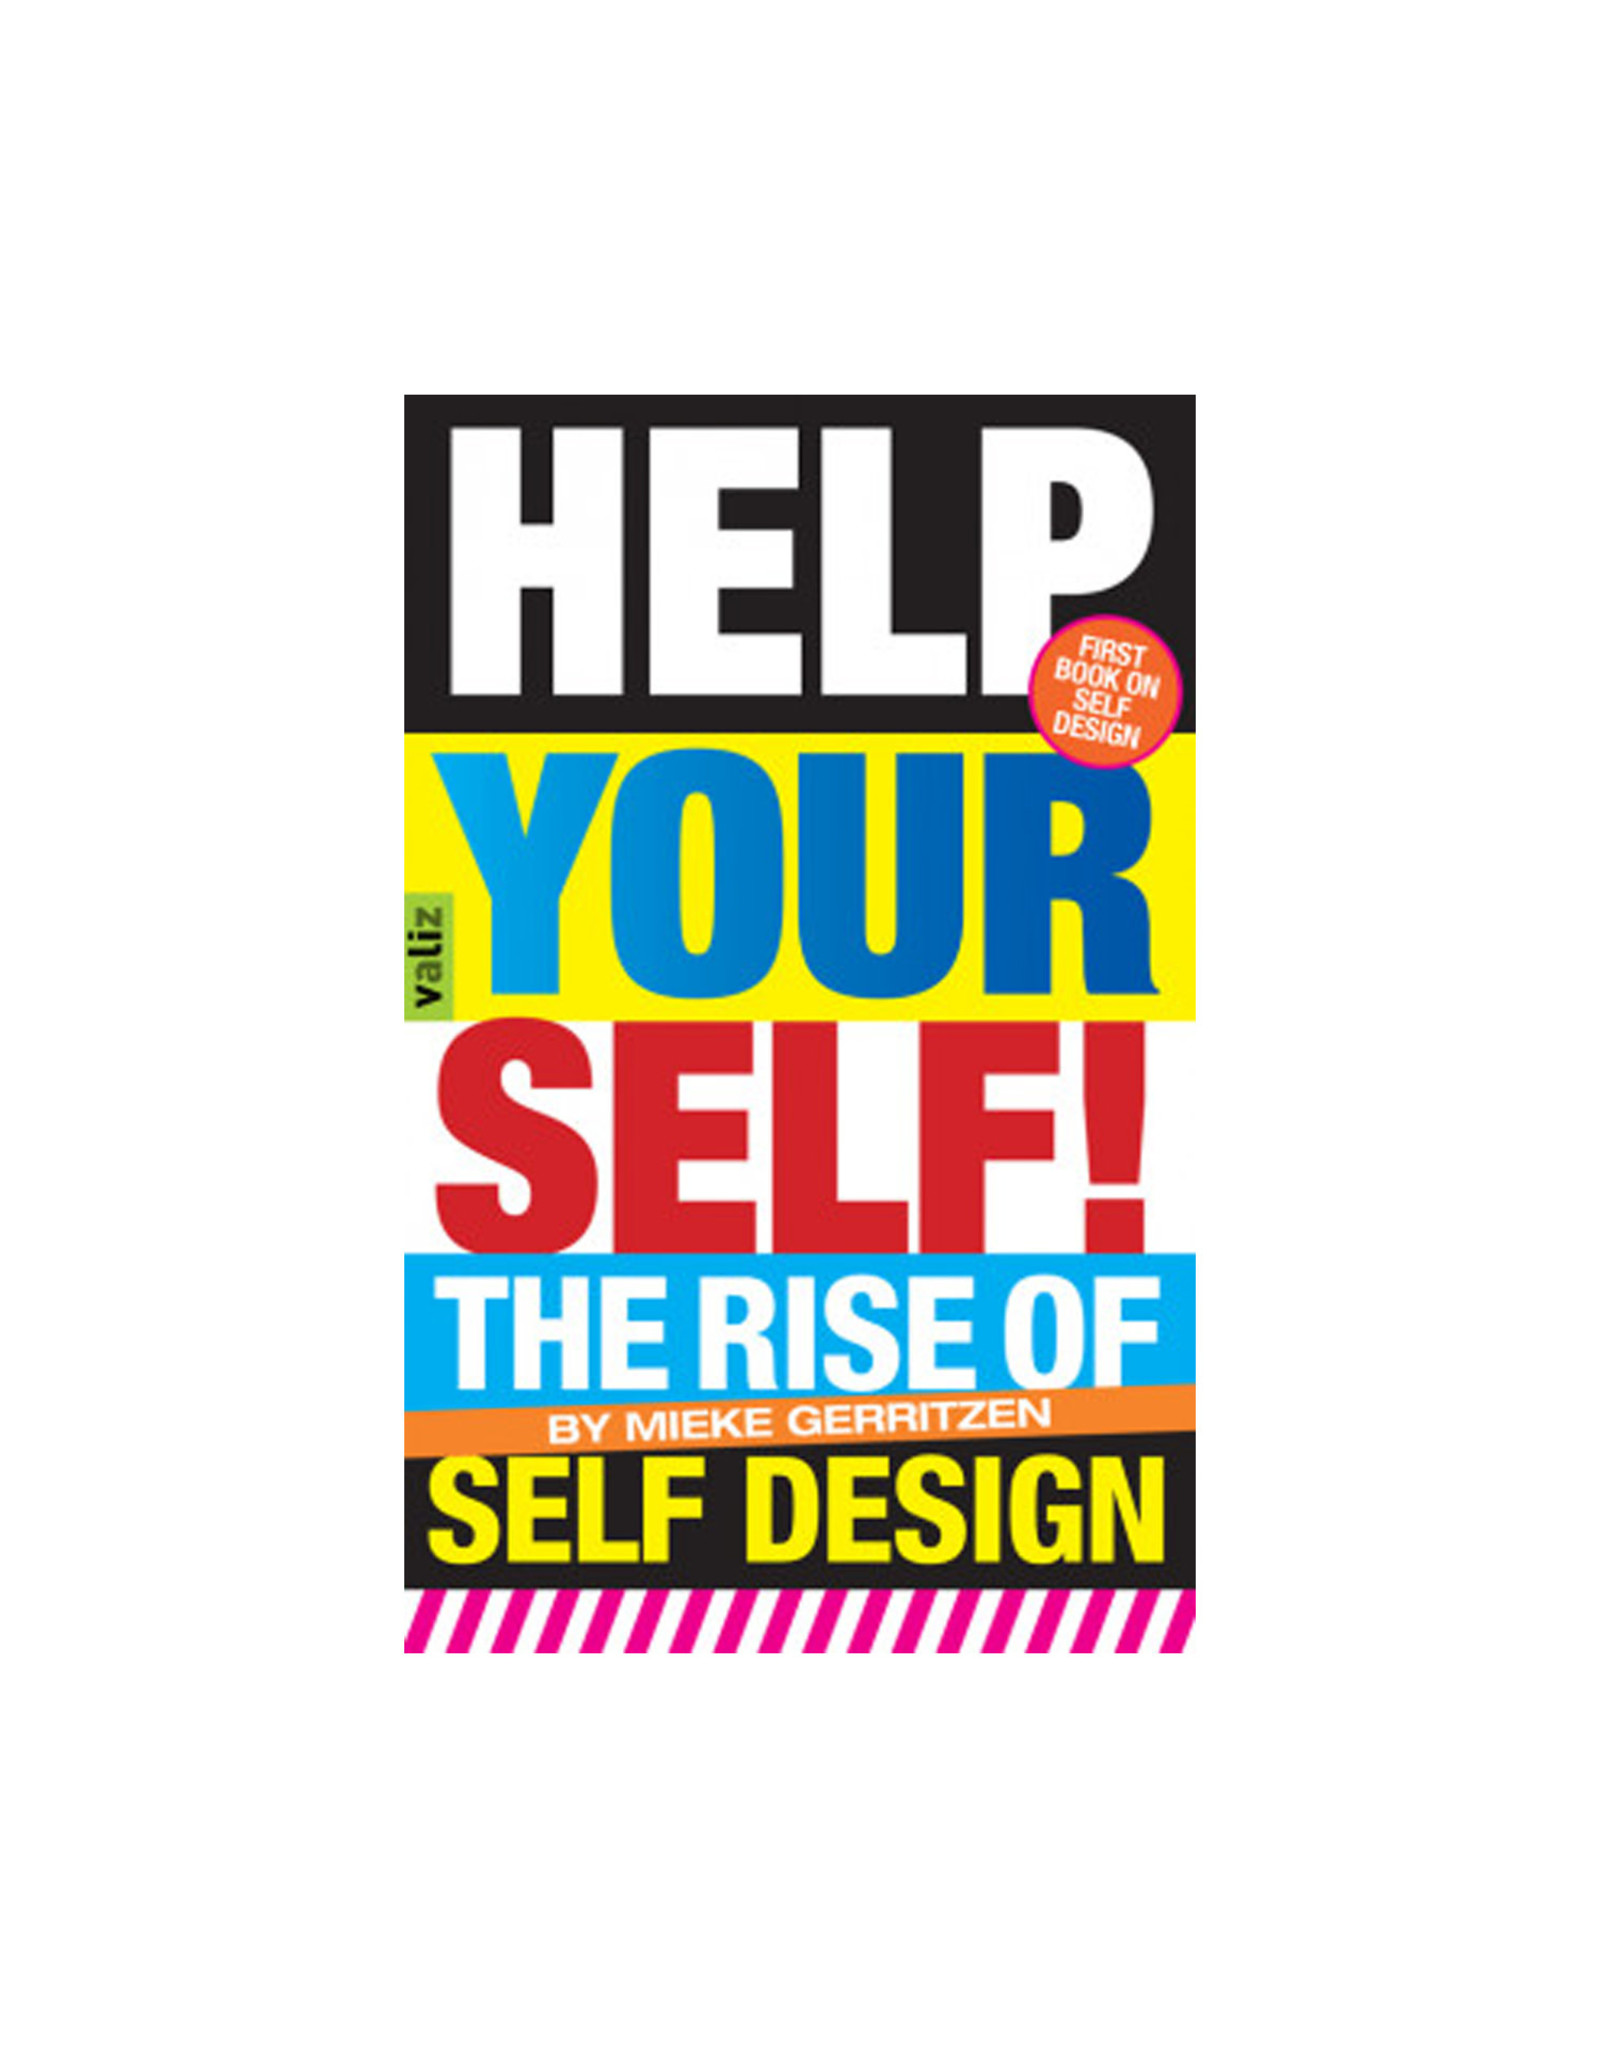 Help Your Self - The Rise Of Self-Design